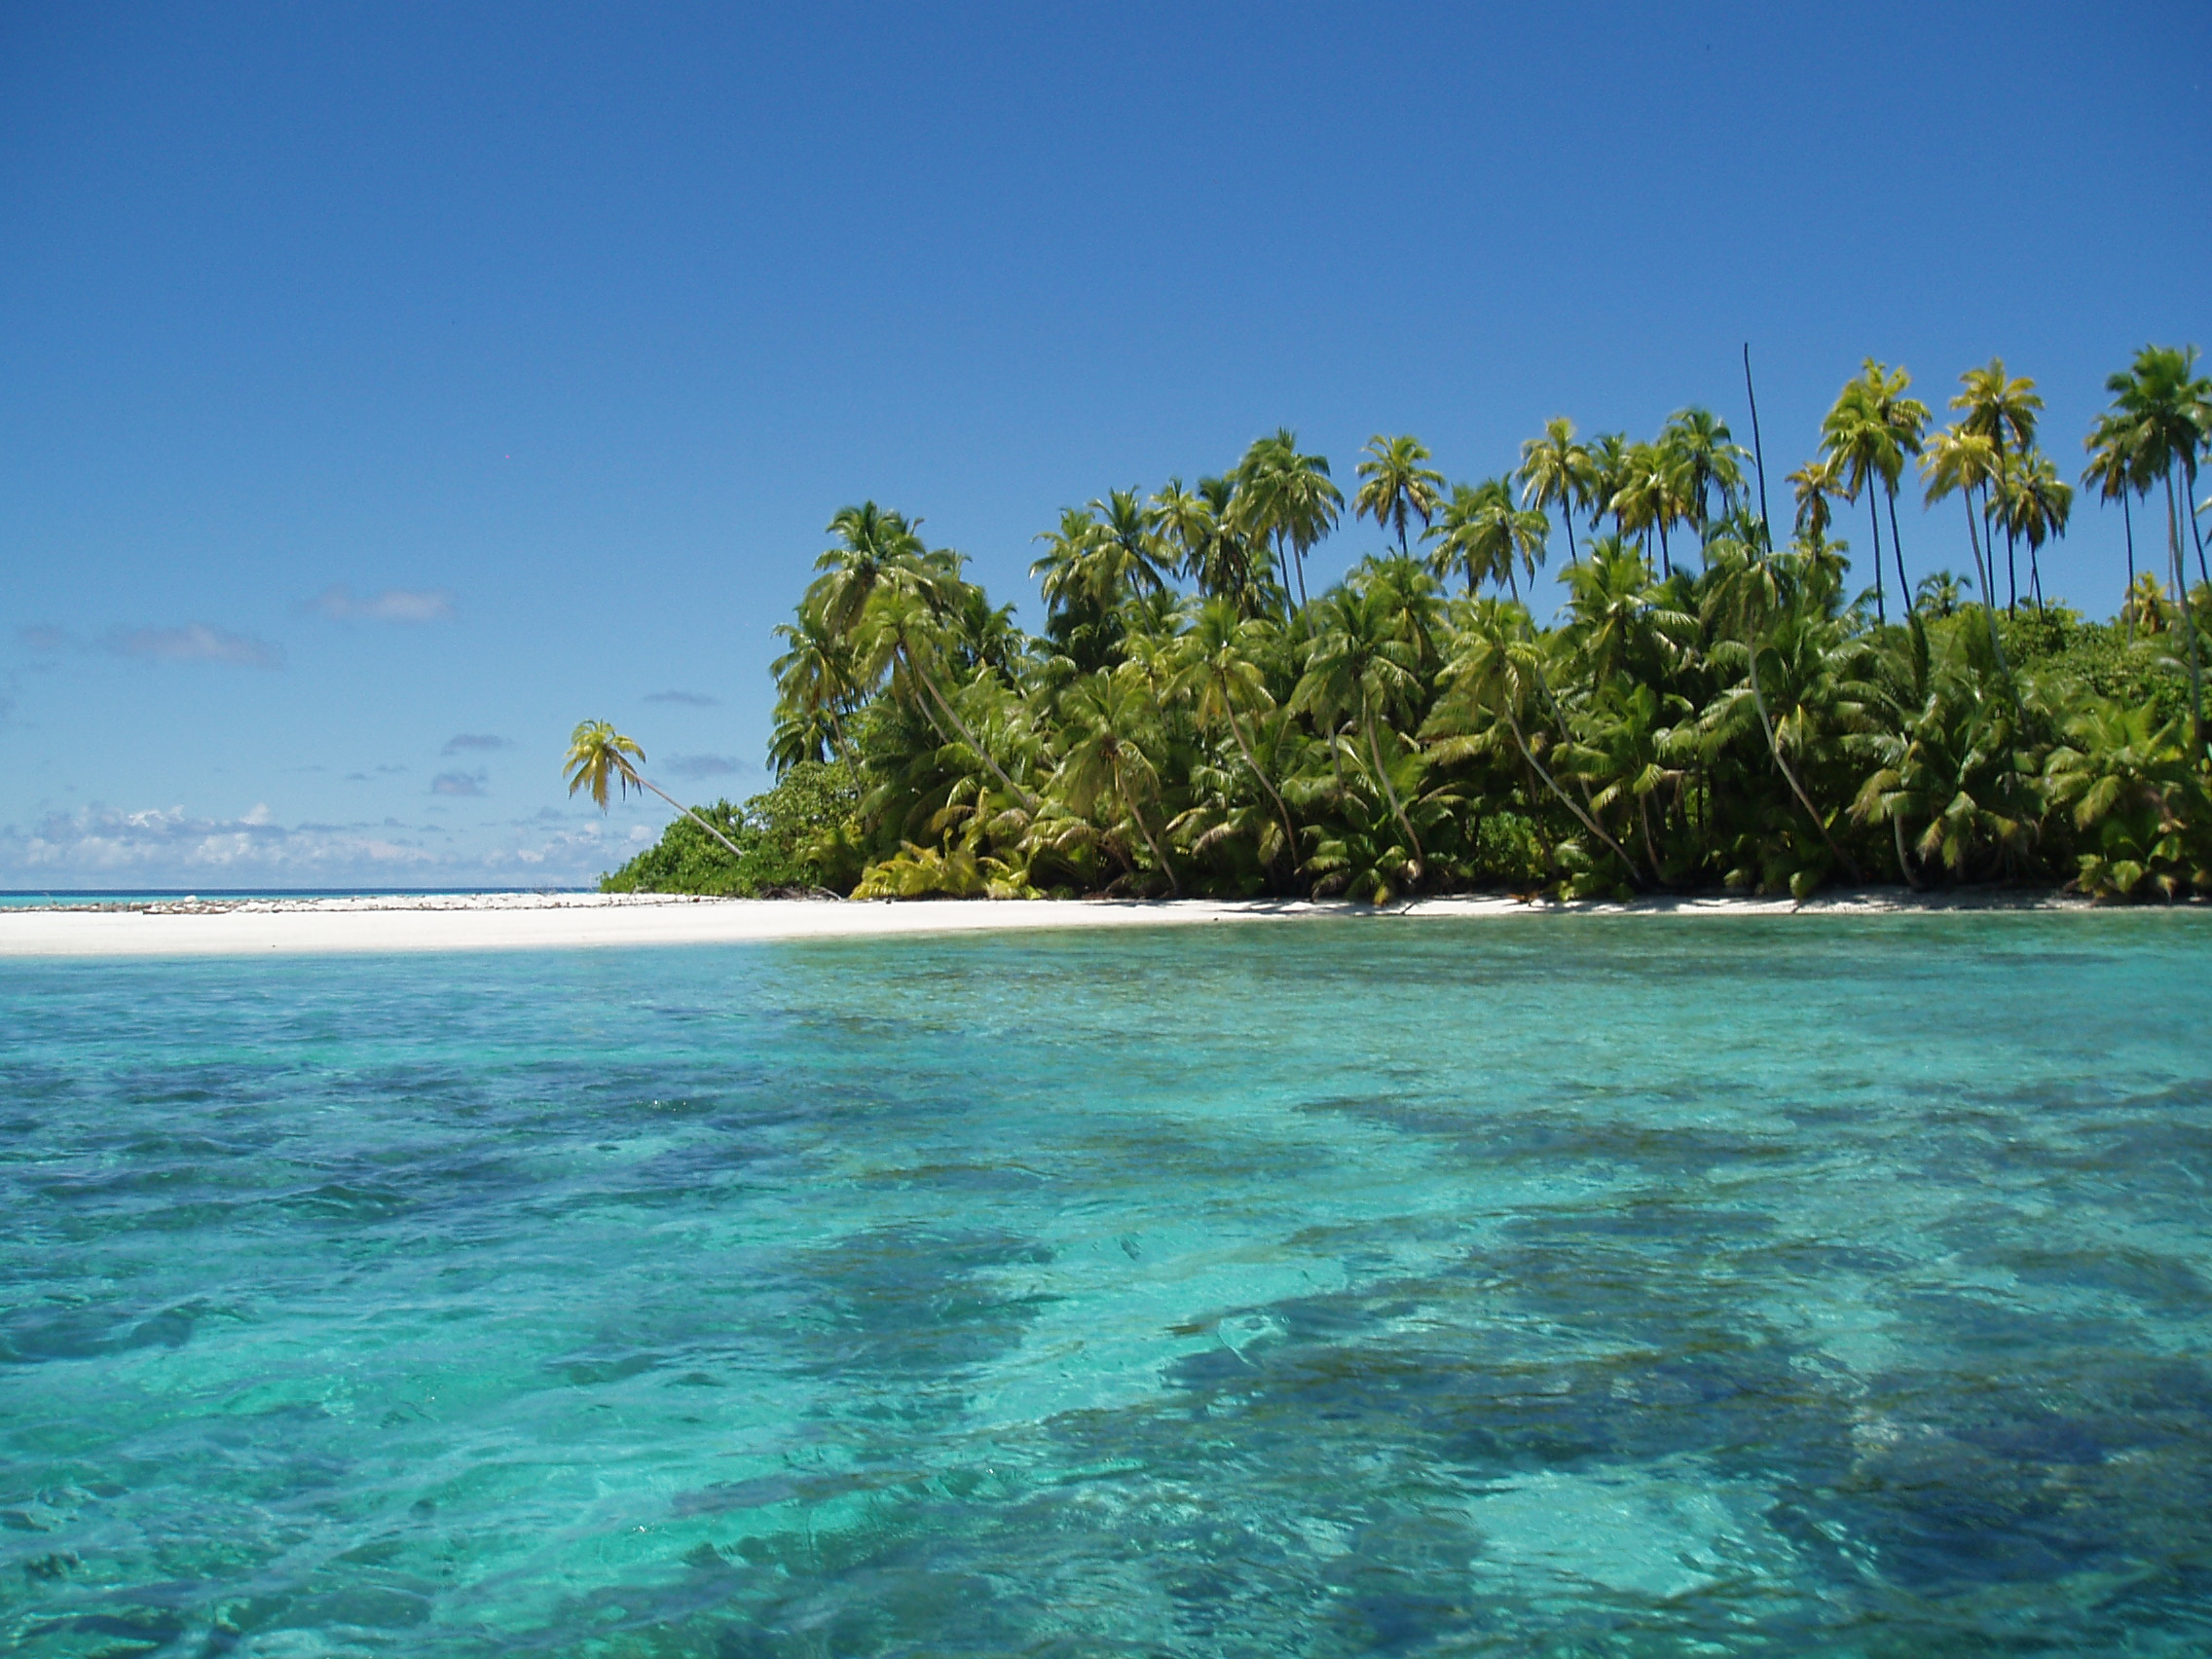 UN maritime tribunal rules no UK sovereignty over Chagos Islands